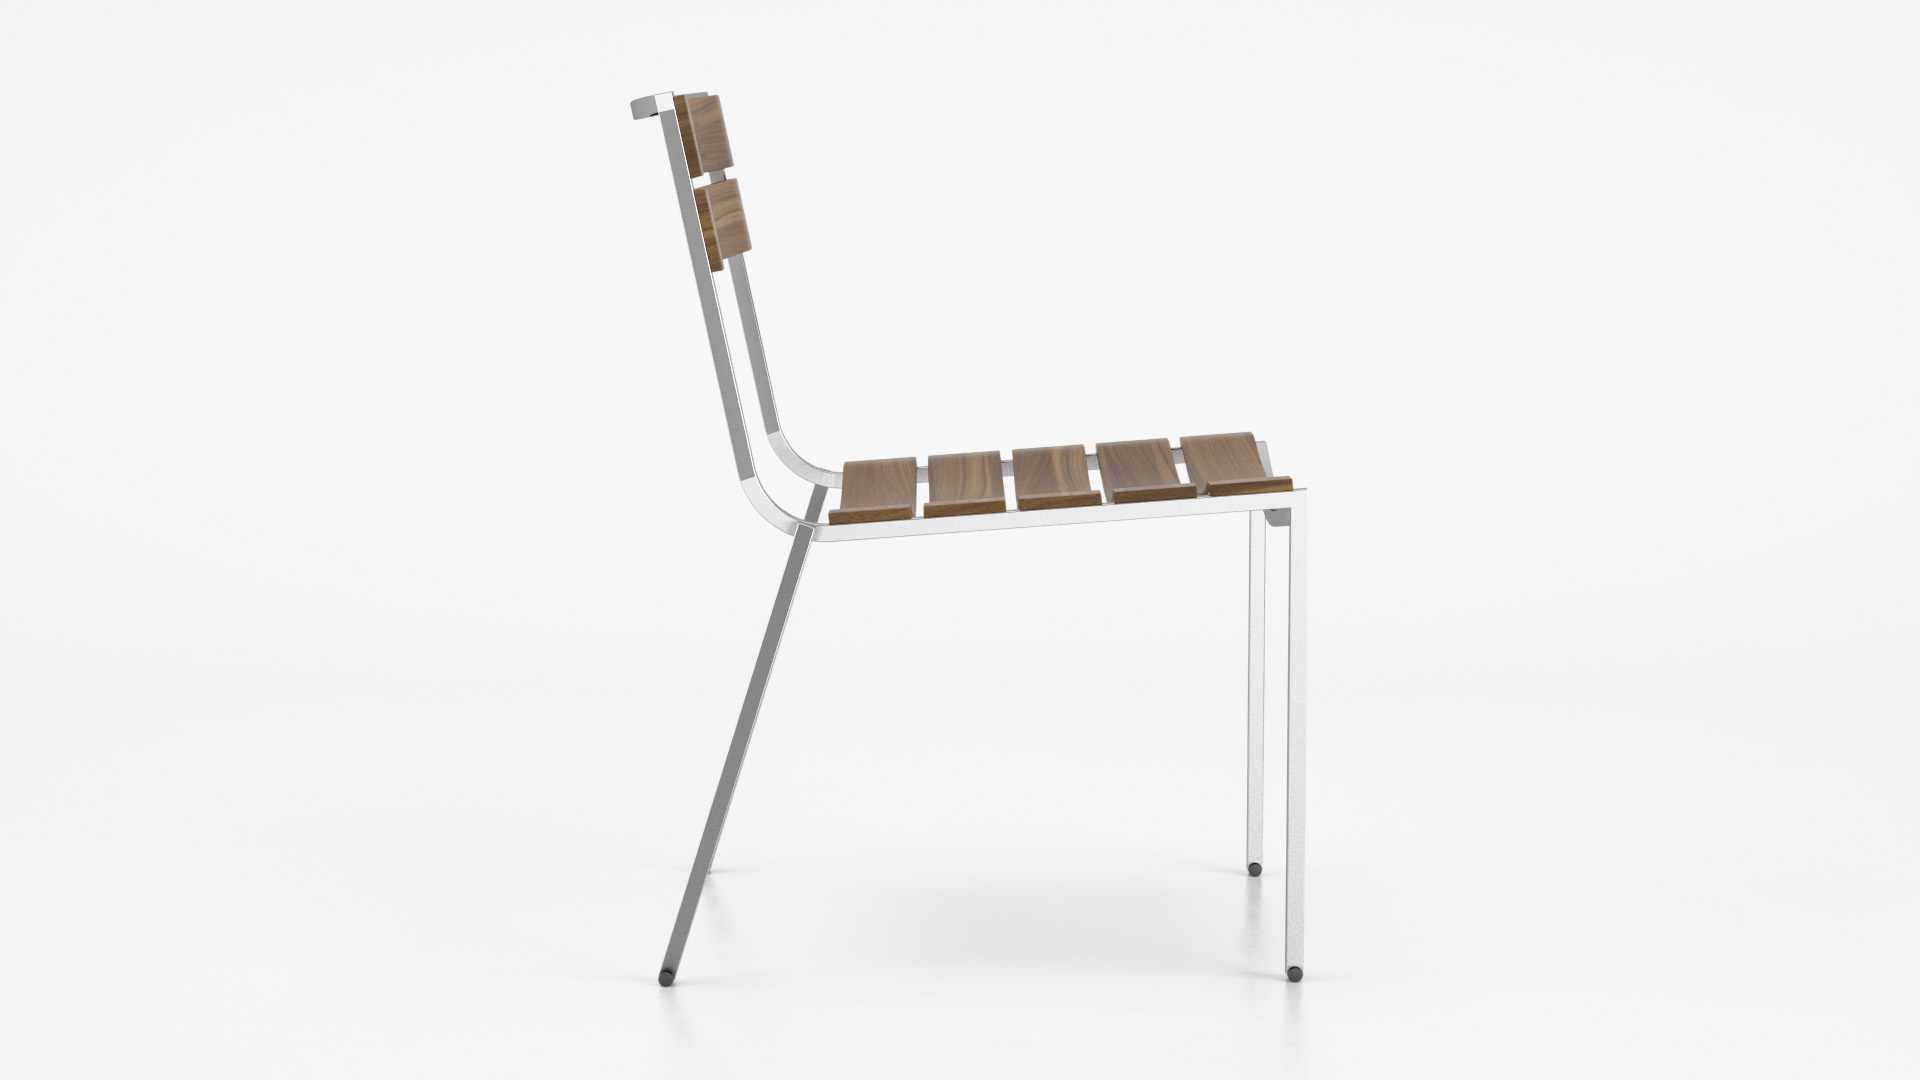 Coro_StackingChair_S05_WhiteSet_01_0001